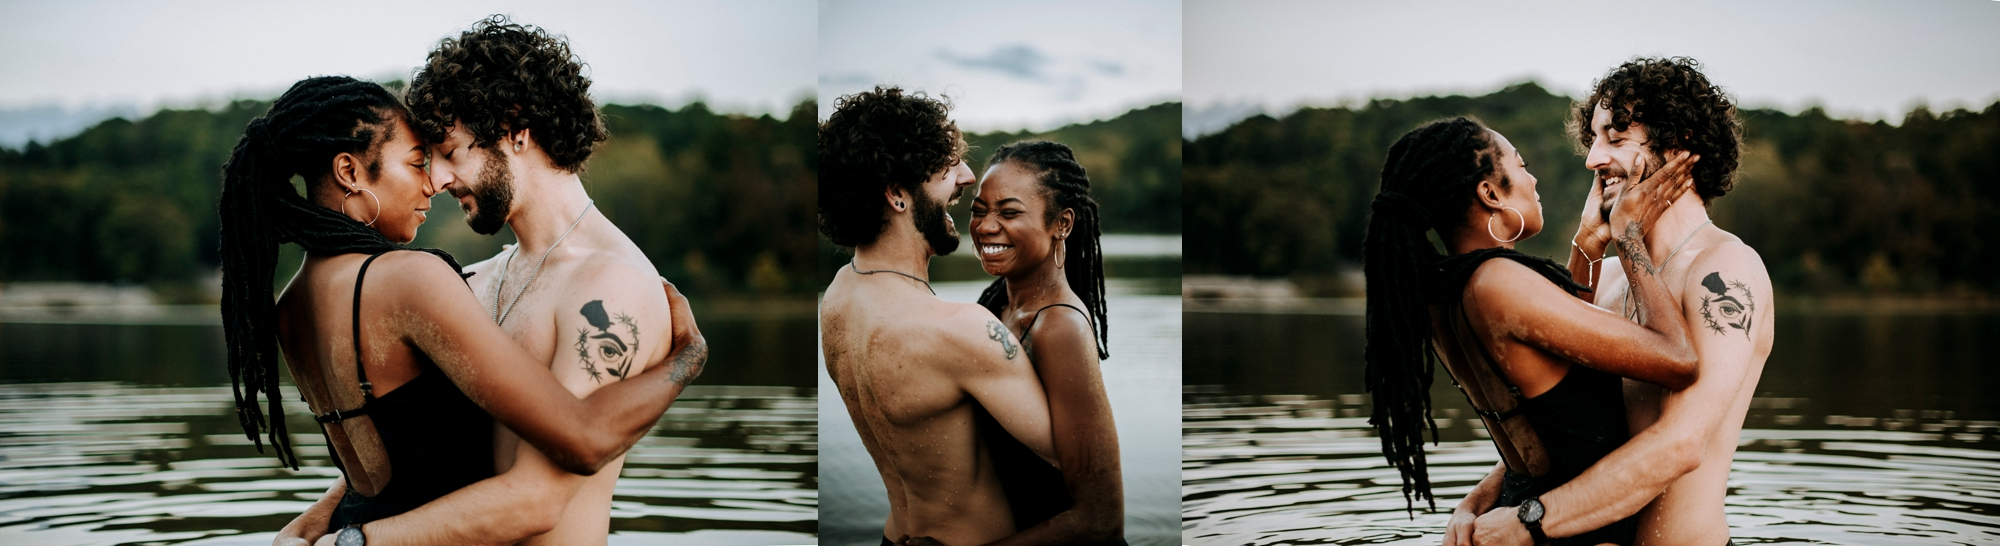 Engagement session fun water